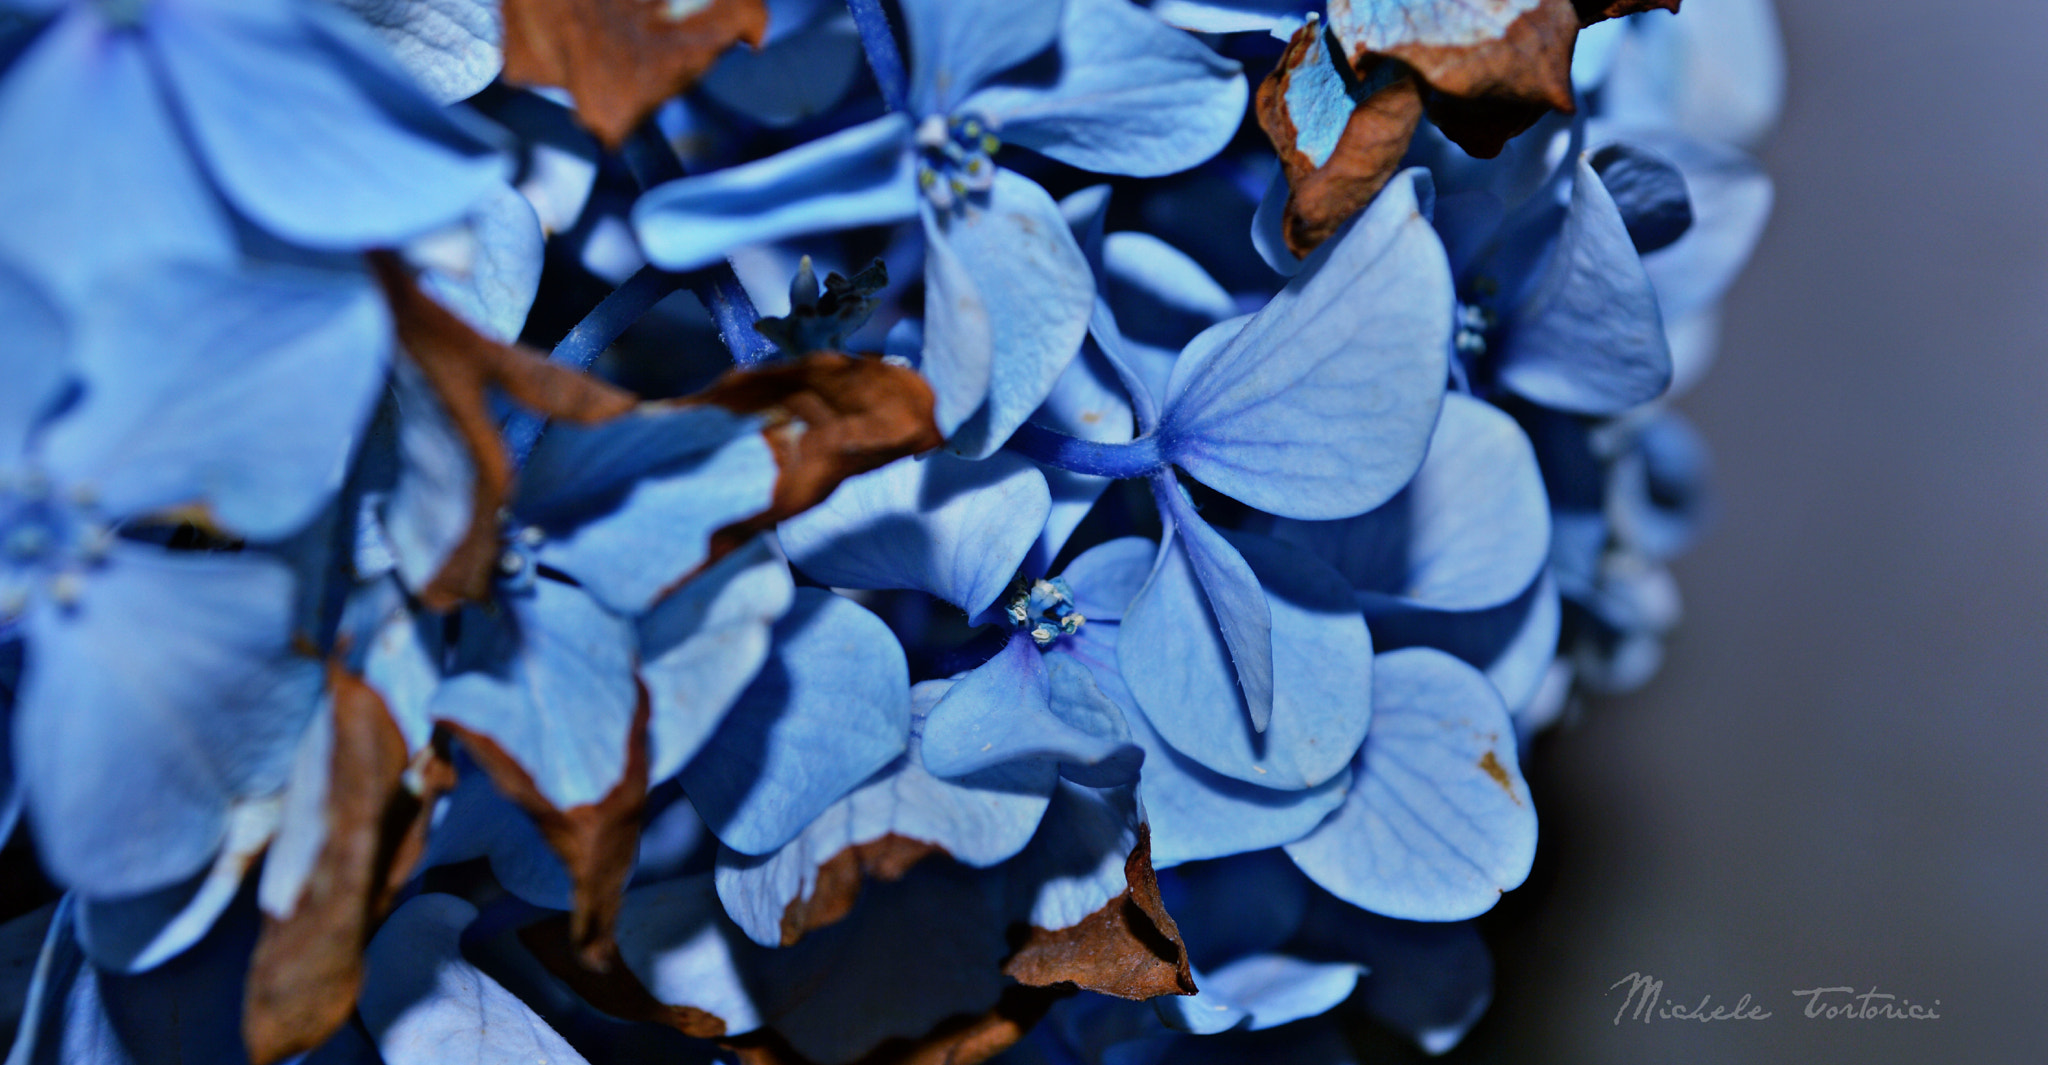 Photograph Hortensia by michele  tortorici on 500px